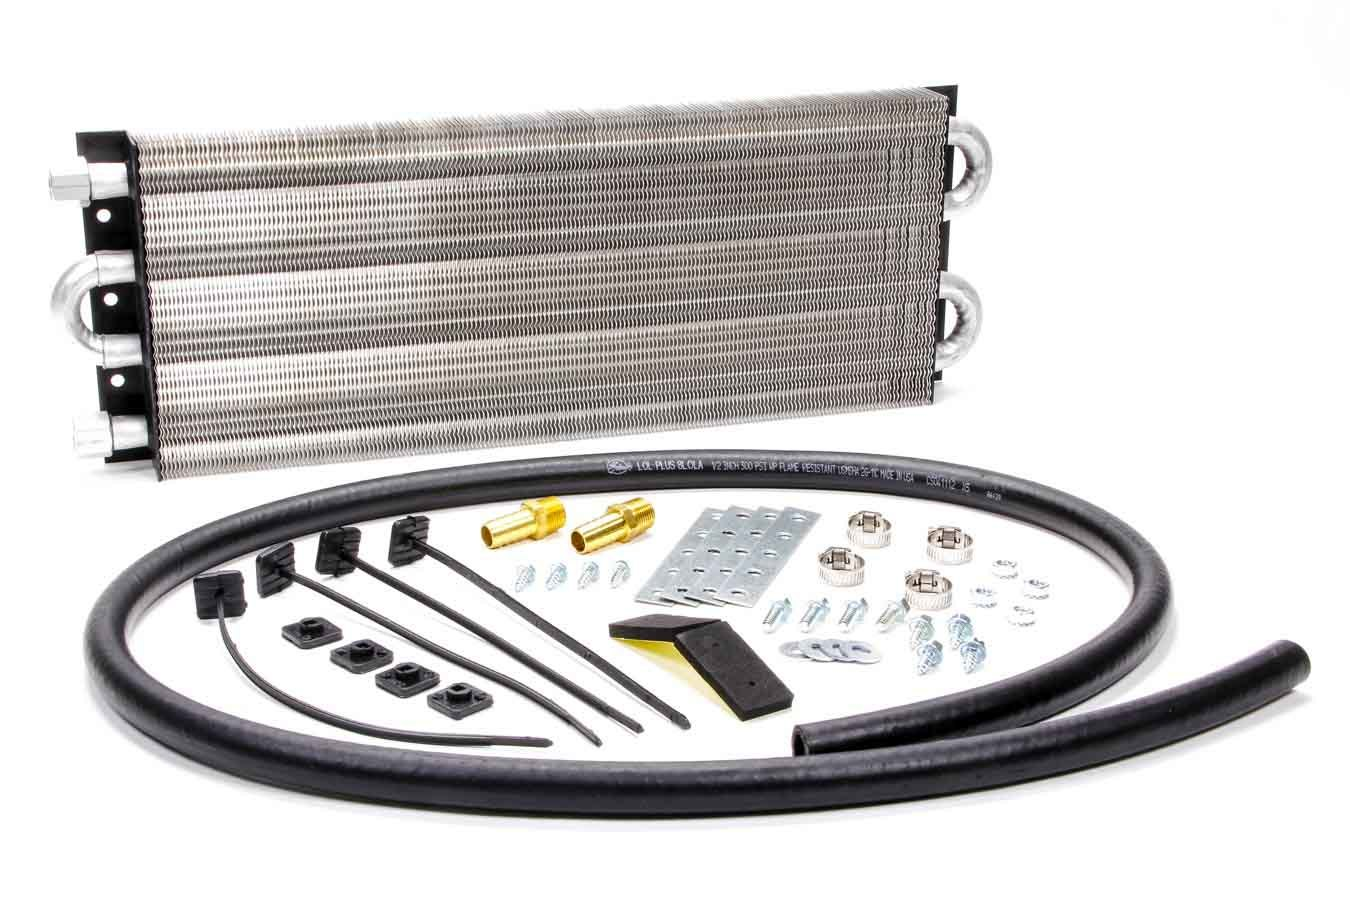 Perma Cool 13161 Fluid Cooler, Heavy Duty, 21 x 7 x 1-1/2 in, Tube Type, 3/8 in NPT Female Inlet, 3/8 in NPT Female Outlet, Hose, Aluminum, Black Paint / Natural, Dodge Cummins, Kit